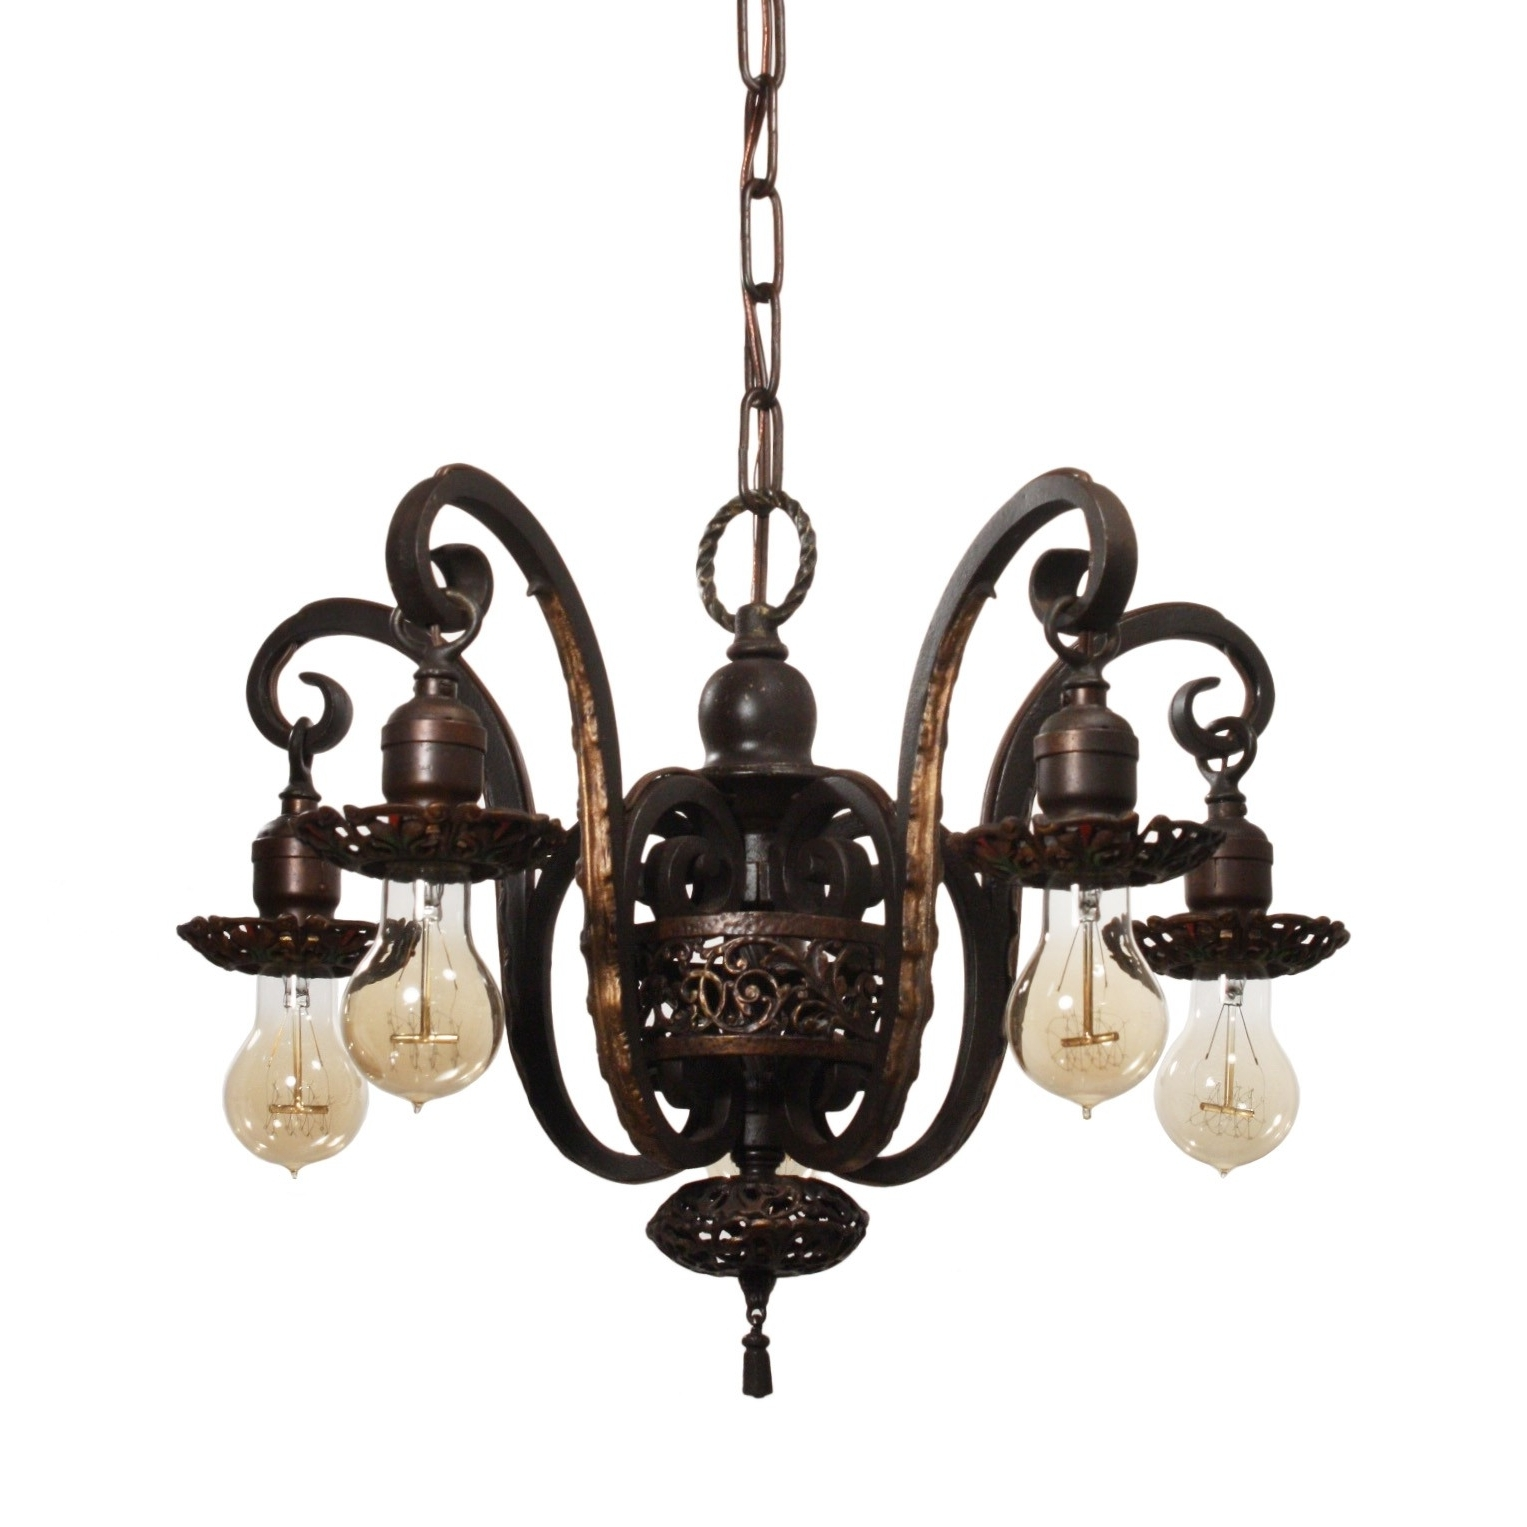 Most Recent Spanish Revival Chandelier In Cast Iron, Antique Lighting With Cast Iron Antique Chandelier (View 13 of 20)